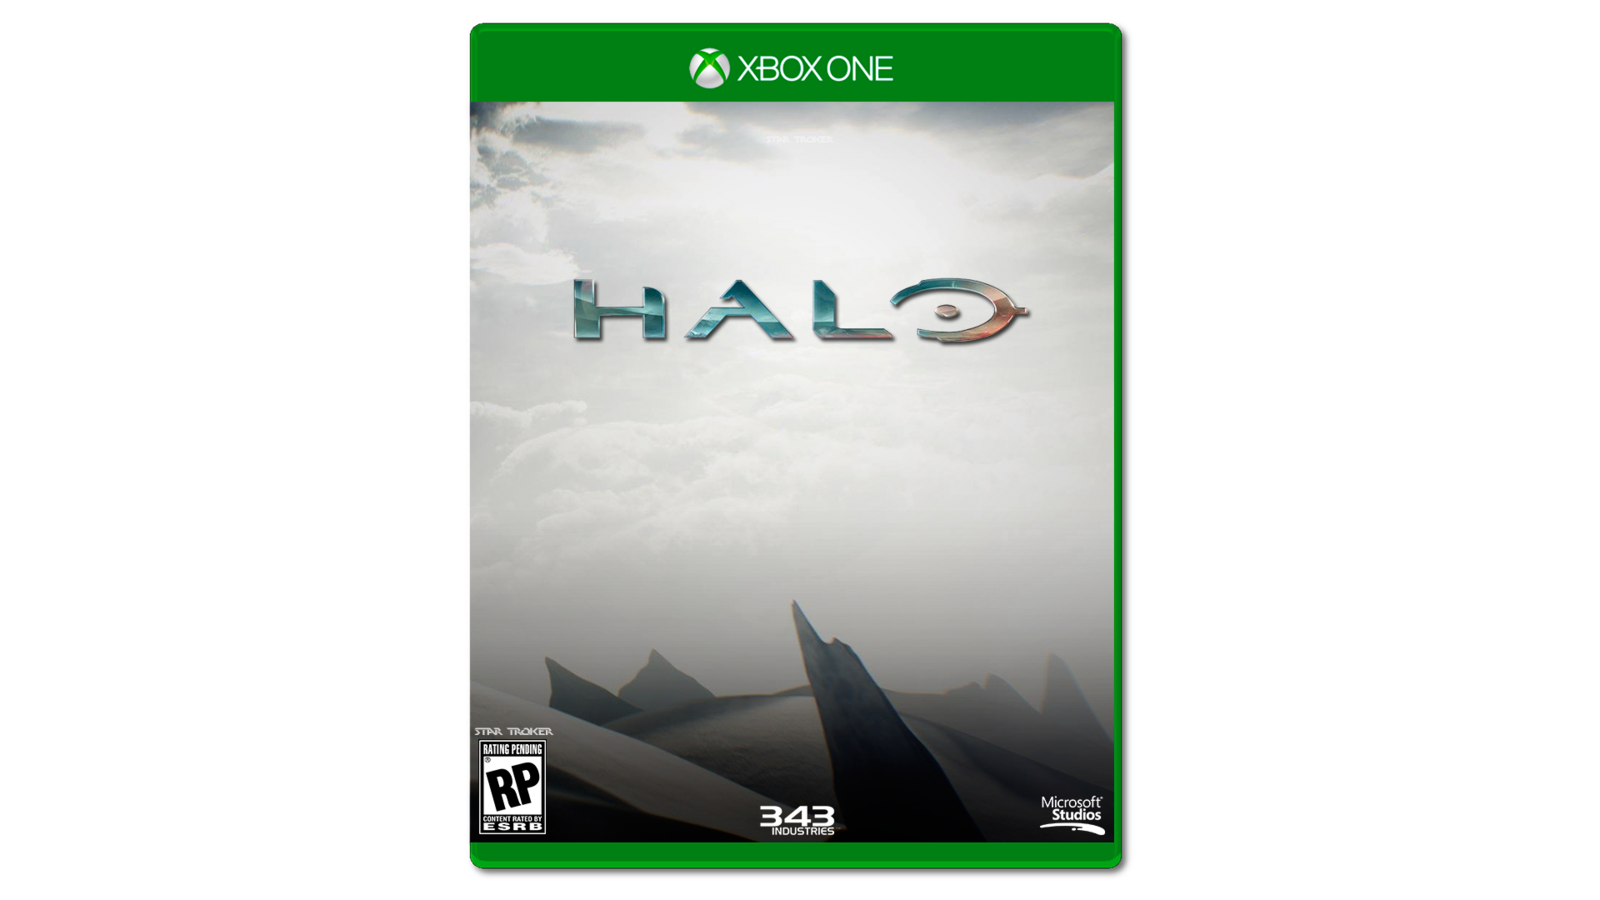 Halo Xbox One Halo 5 by StarTroker 1600x900